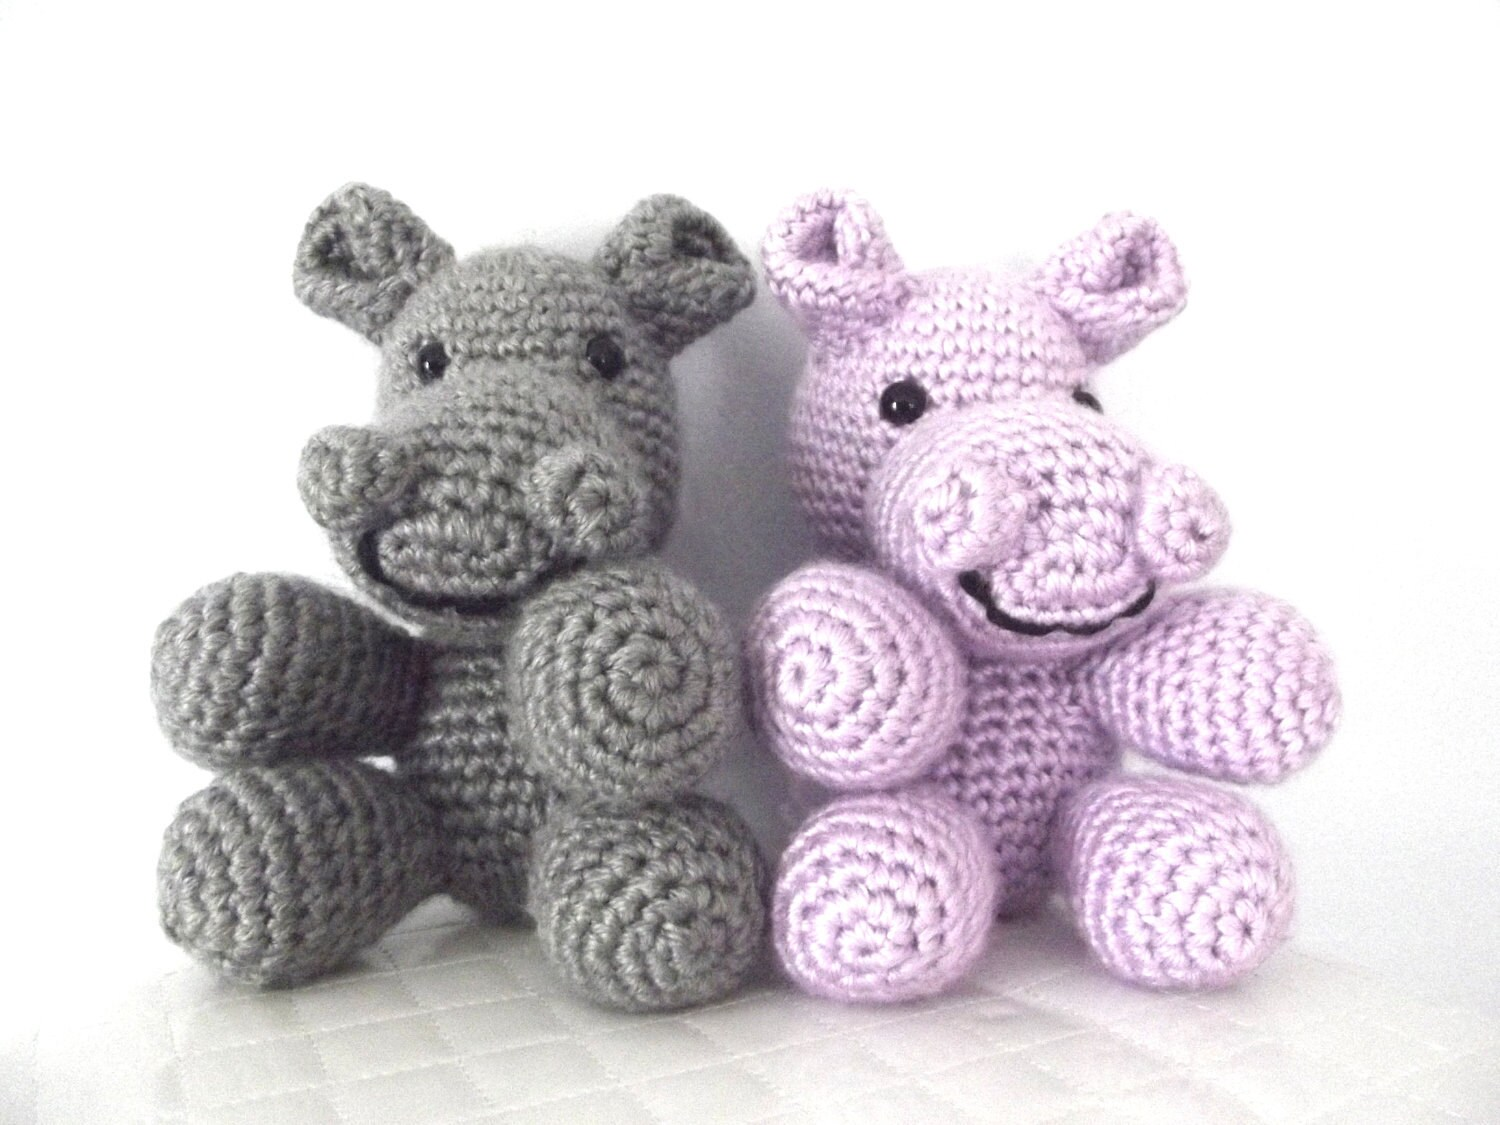 Free Crochet Patterns Of Stuffed Animals : Crochet Pattern Stuffed Animals Free Patterns For Crochet